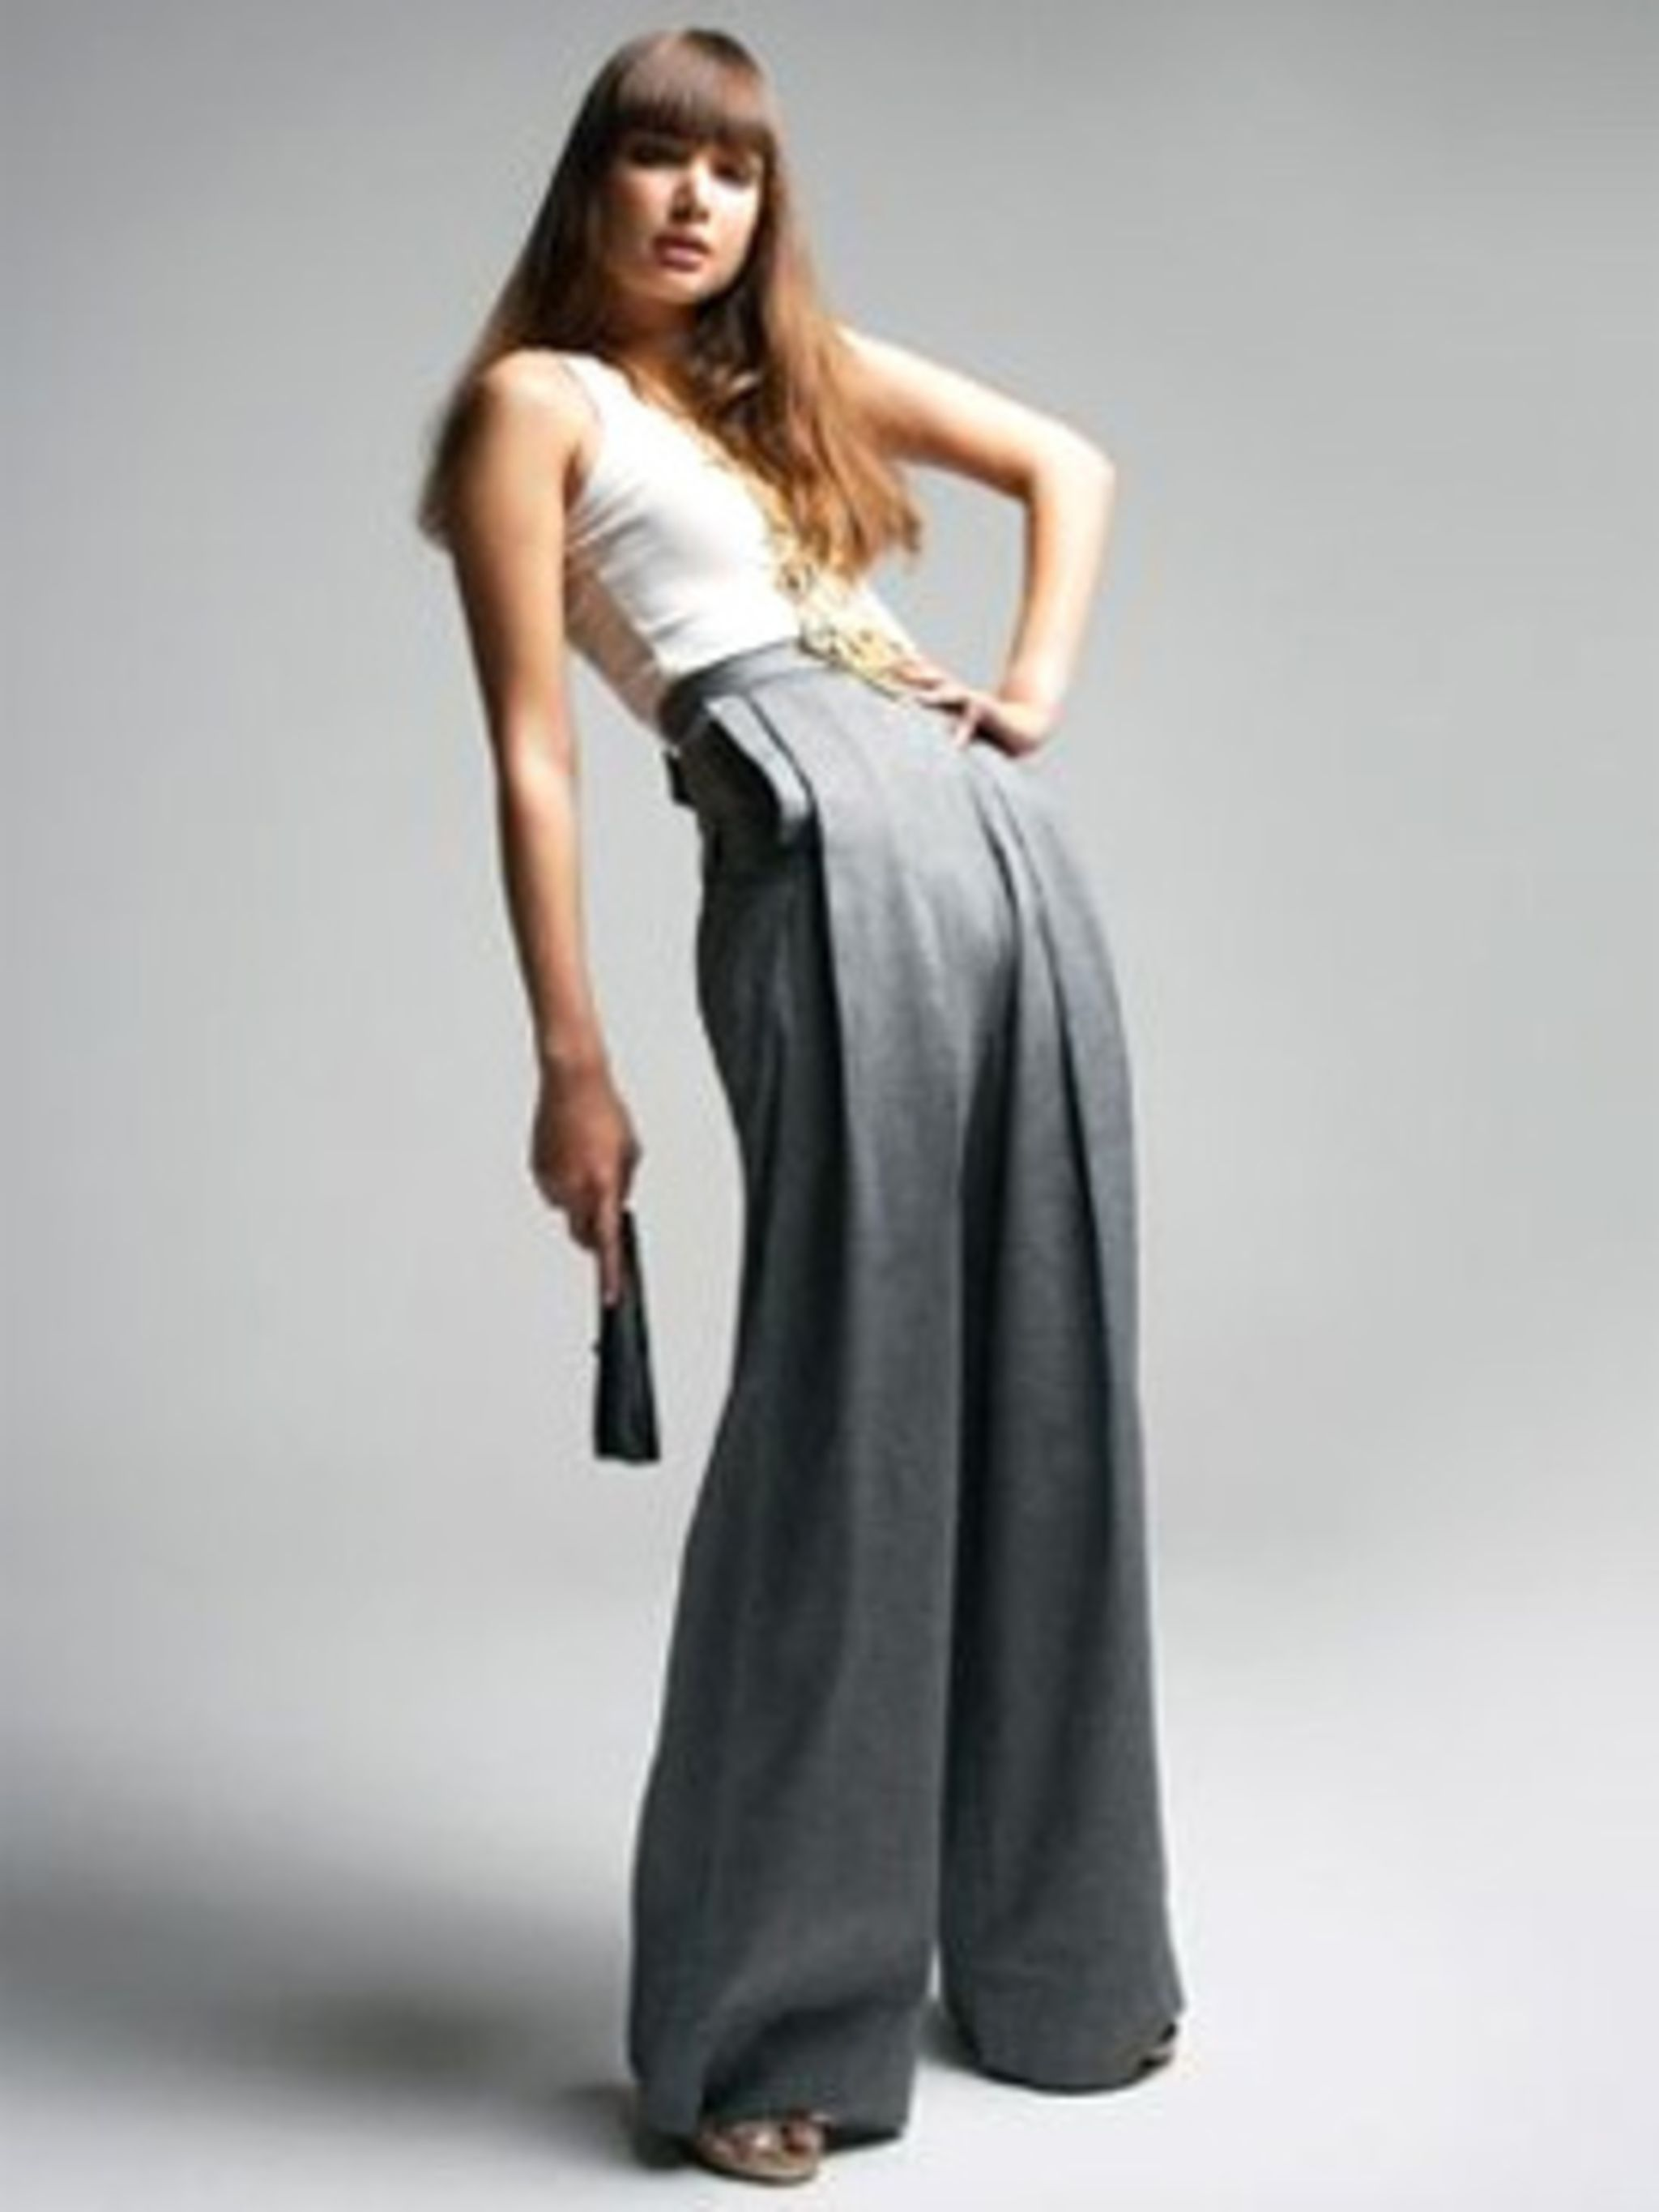 "<p>Launched last year, <a href=""http://www.elleuk.com/shopping/designer-shopping/eco-shopping-special-spring-summer-2008"">Fashion Conscience</a> has swiftly become the one-stop-shop for discerning fashionistas looking for guilt free high fashion. Stocking"